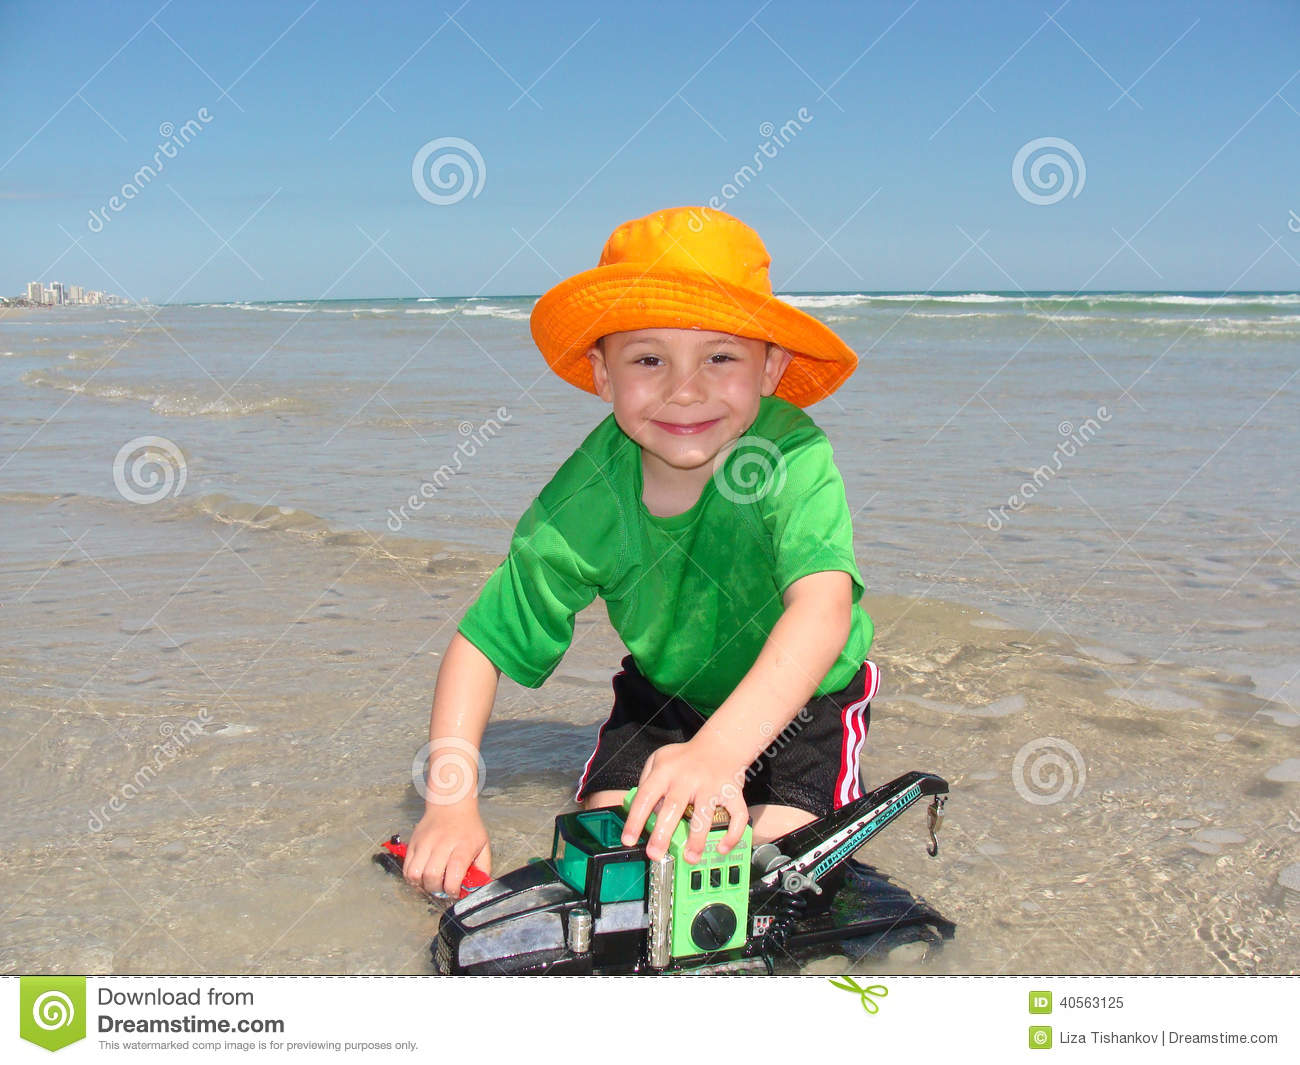 Download Happy Boy With Toy Crane On Beach Stock Image - Image of summer, truck: 40563125